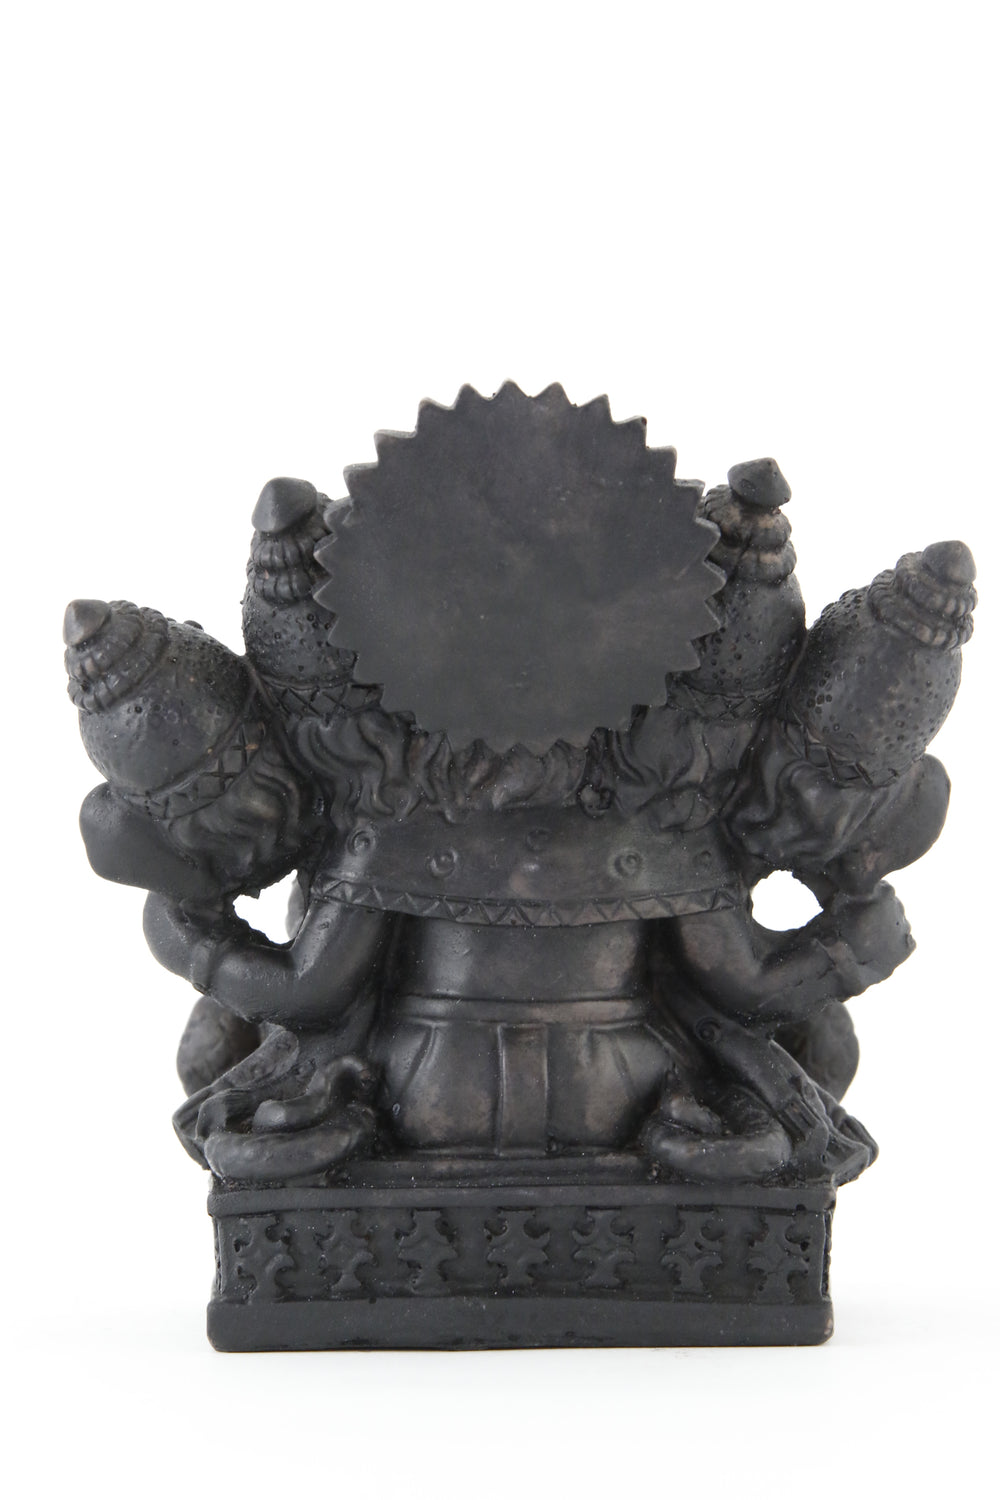 GANESHA MULTI HEAD STATUE DARK BACK VIEW